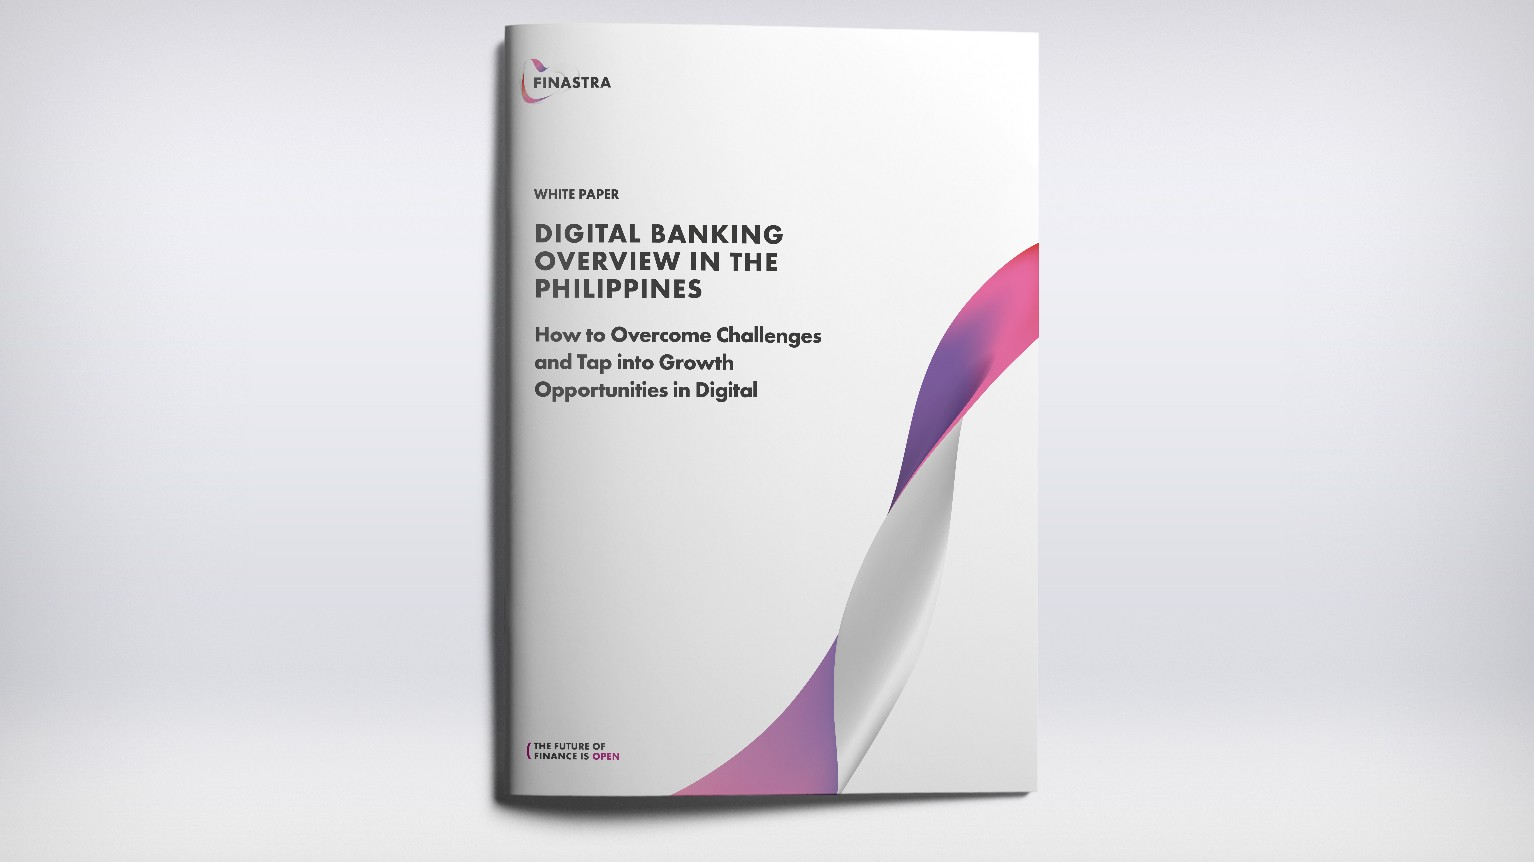 Digital Banking Overview in the Philippines